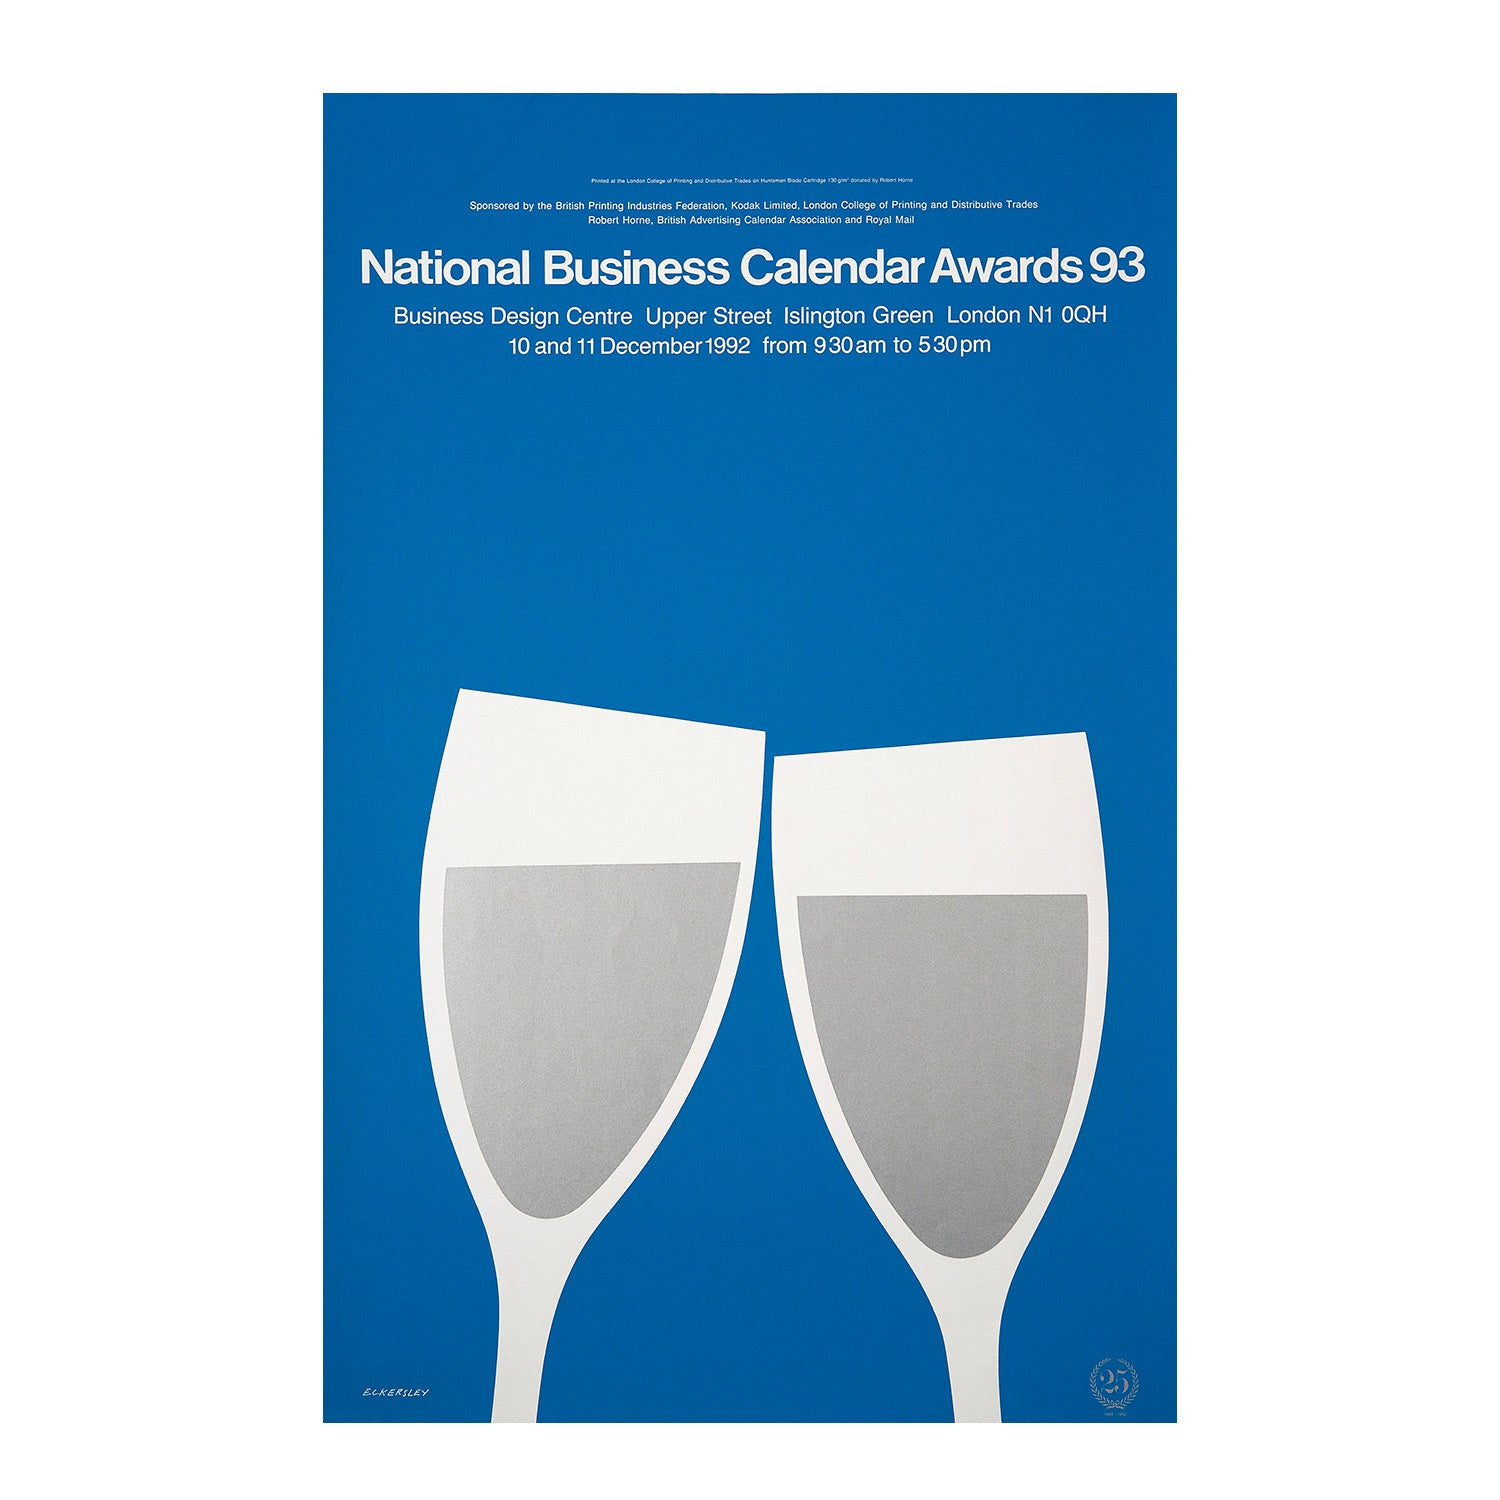 National Business Calendar Awards 93